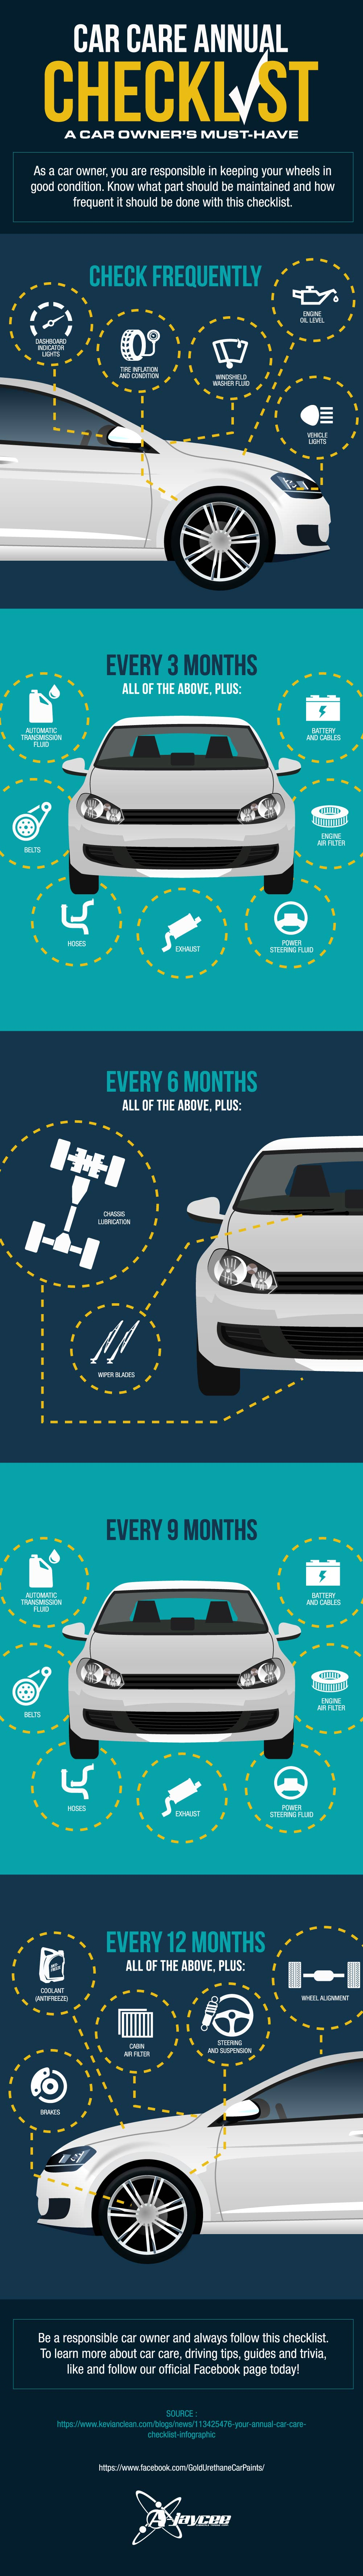 Car Care Checklist: Infographic